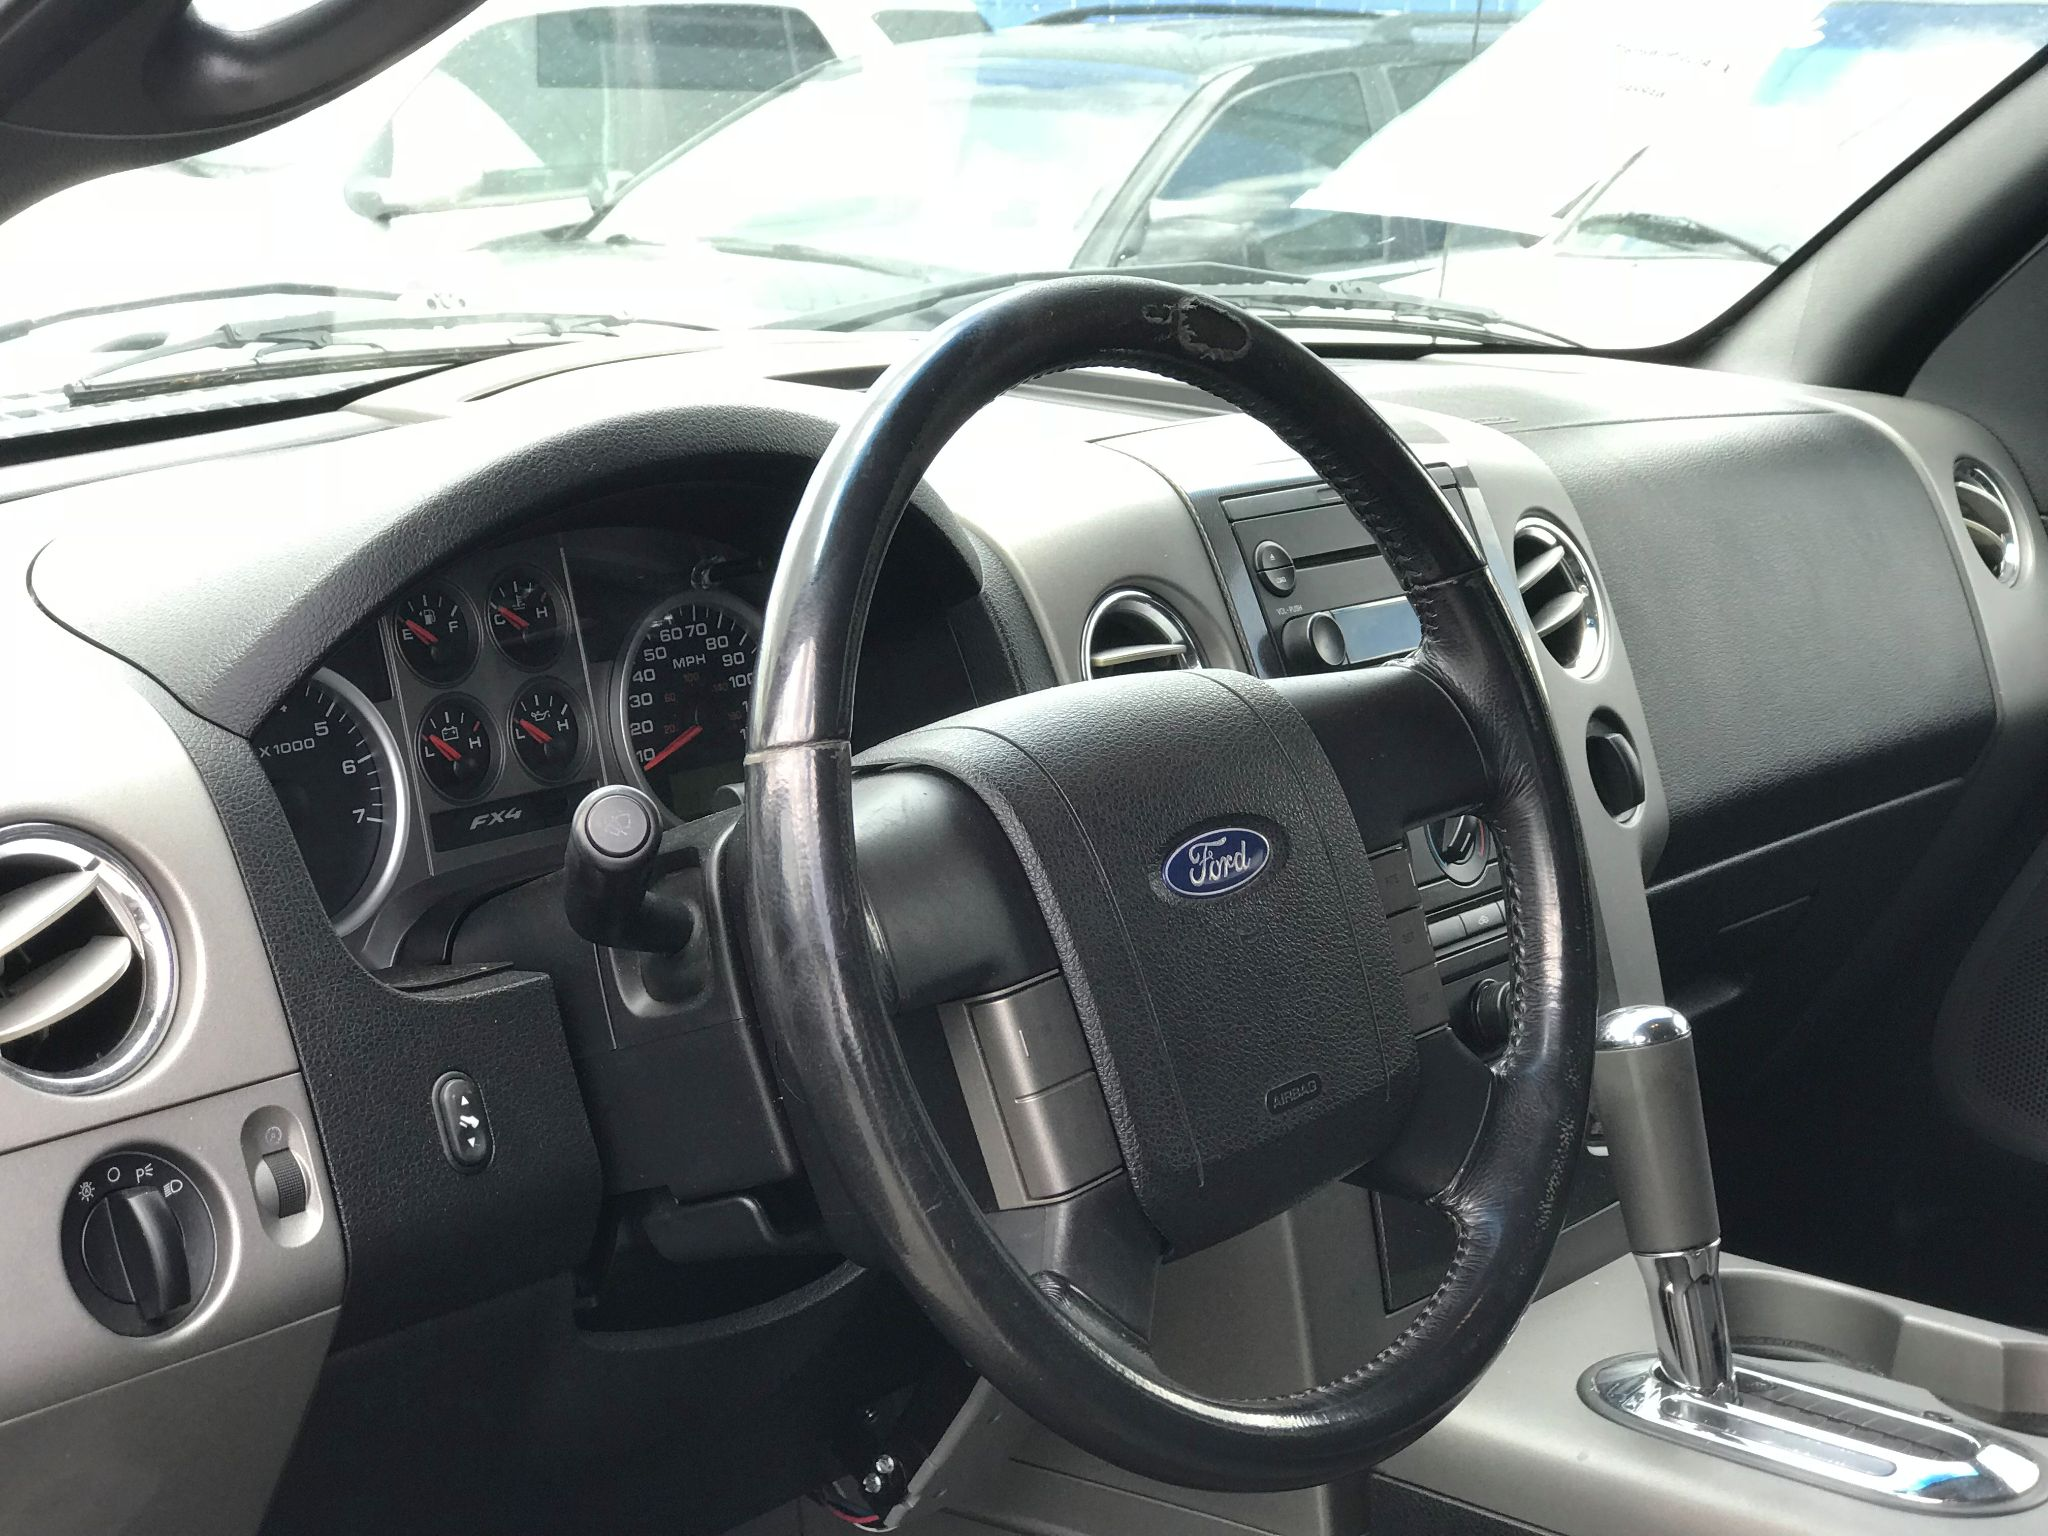 Used 2004 Ford F 150 Fx4 At City Cars Warehouse Inc Sport